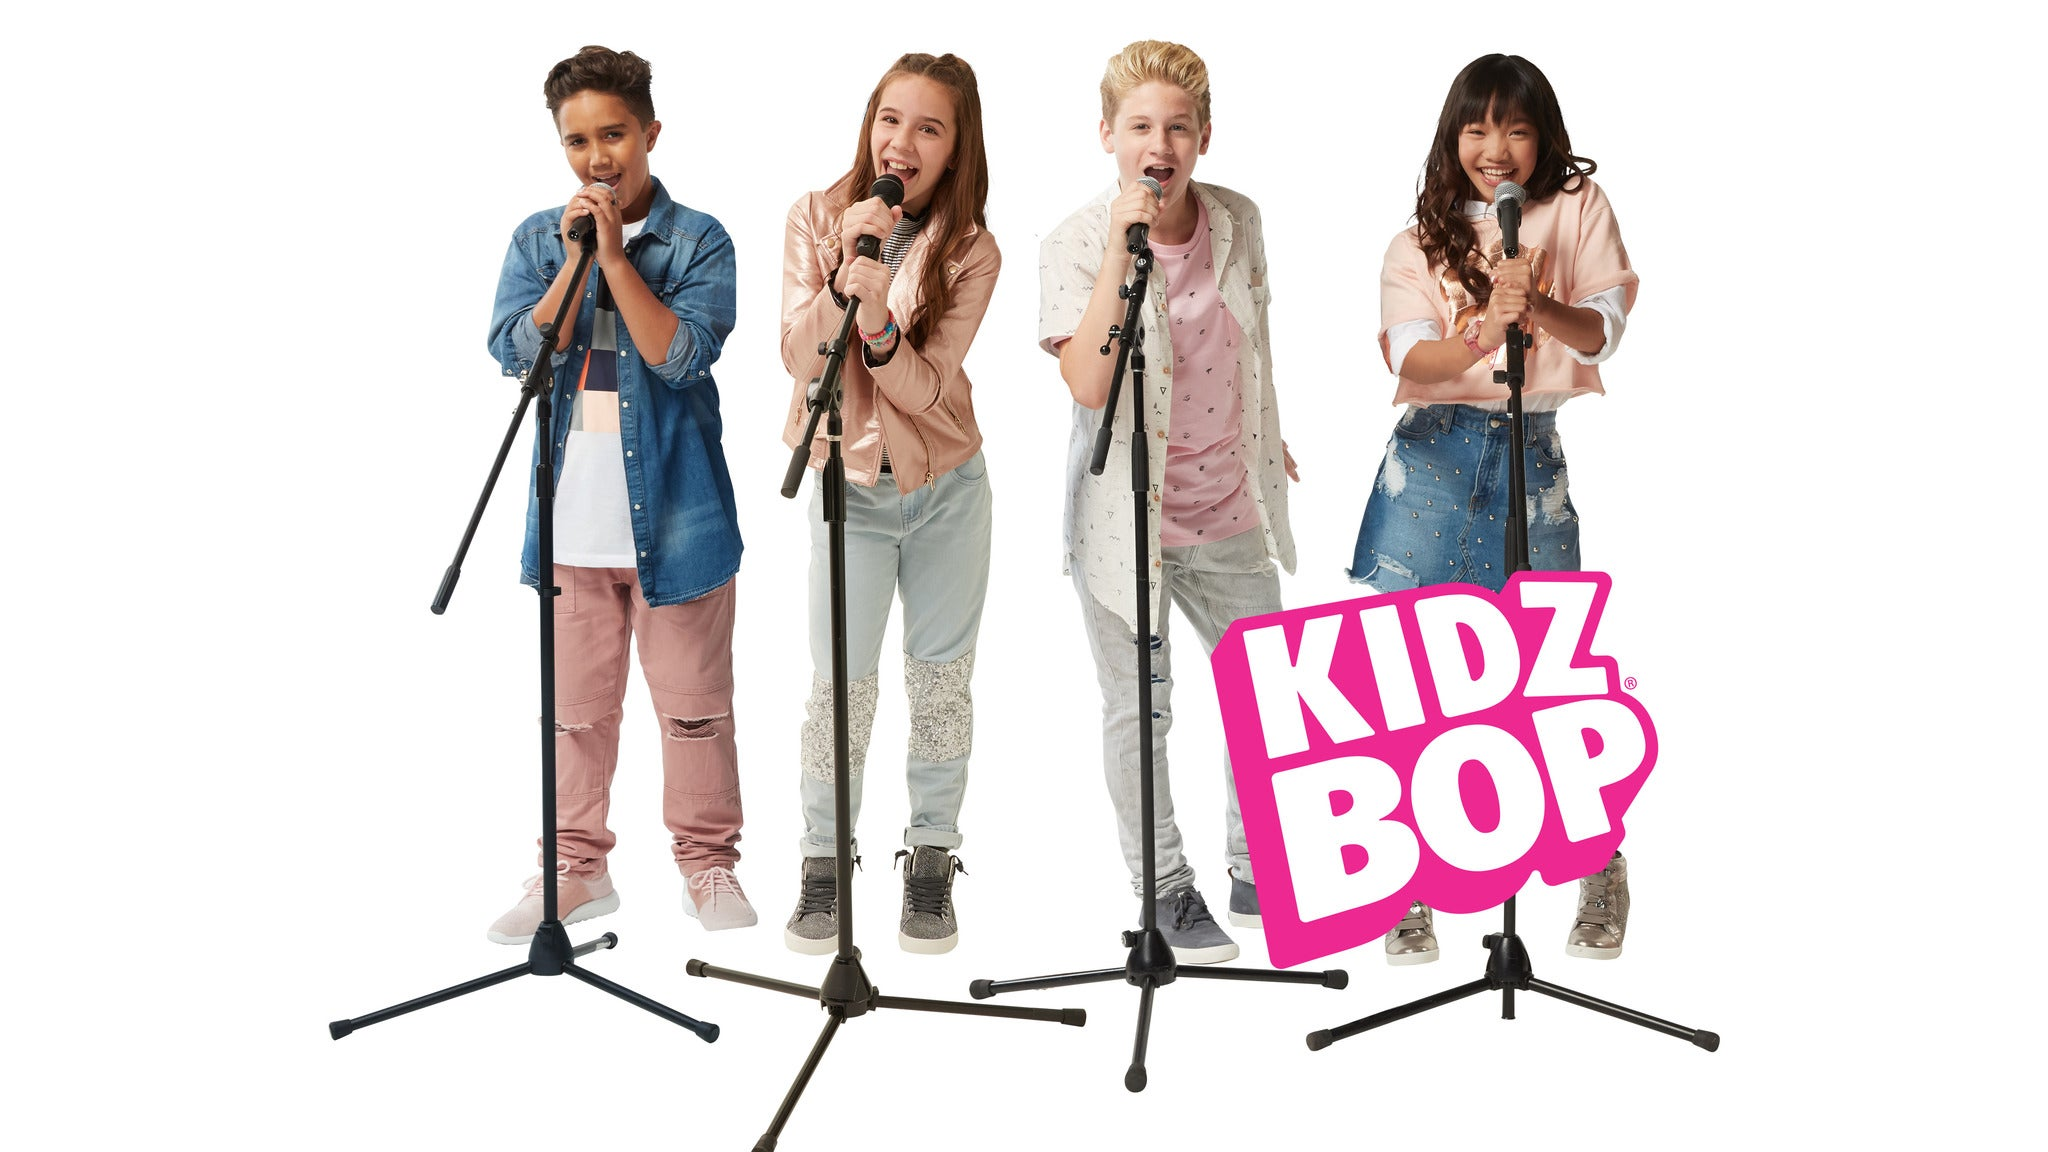 Kidz Bop - Upgrade Meet & Greet Packages - Tinley Park, IL 60477